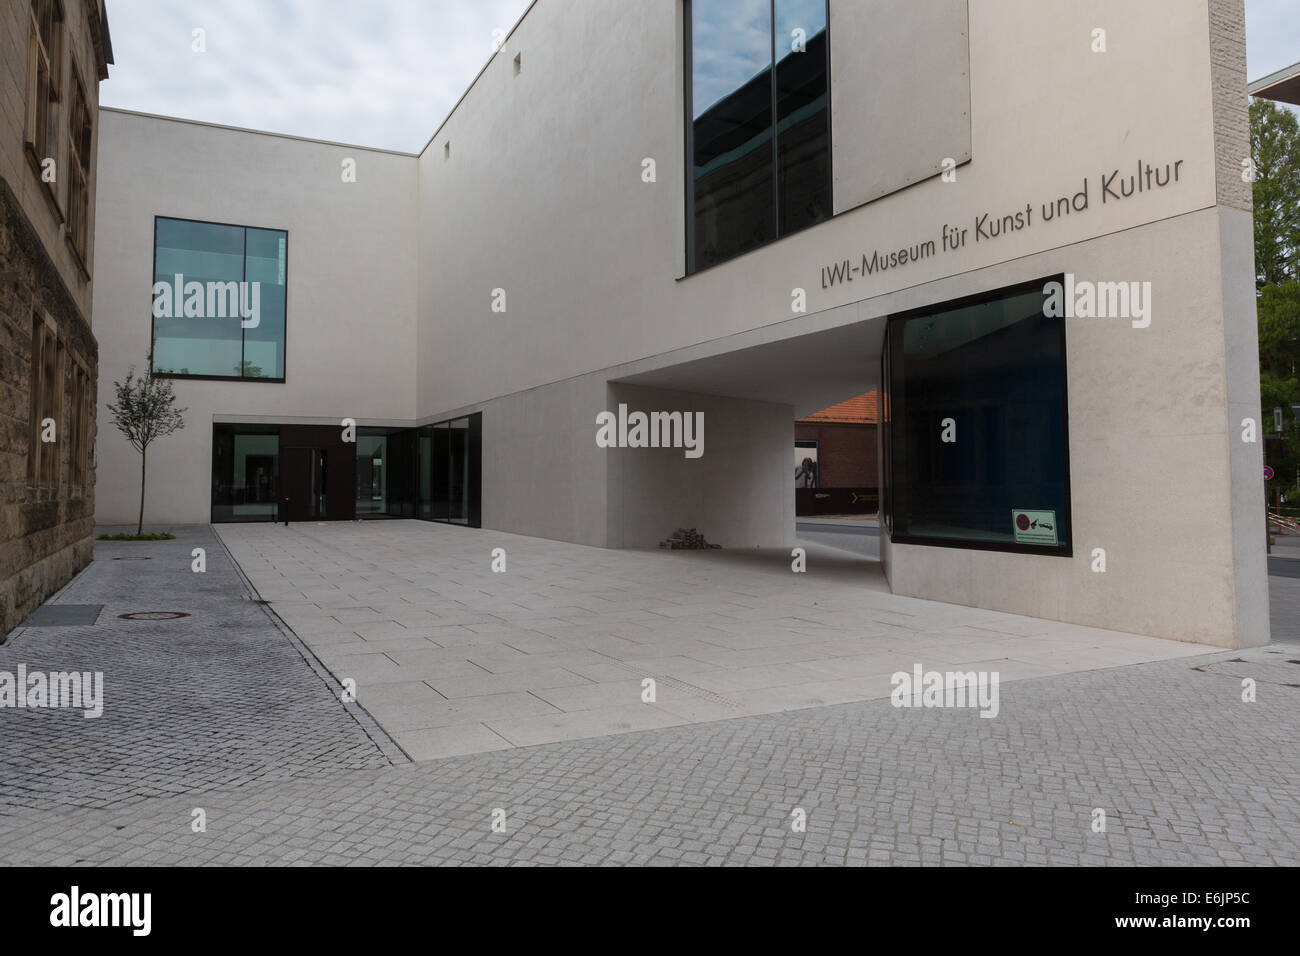 The Museum of Art and Culture in Münster, NRW, Germany - Stock Image